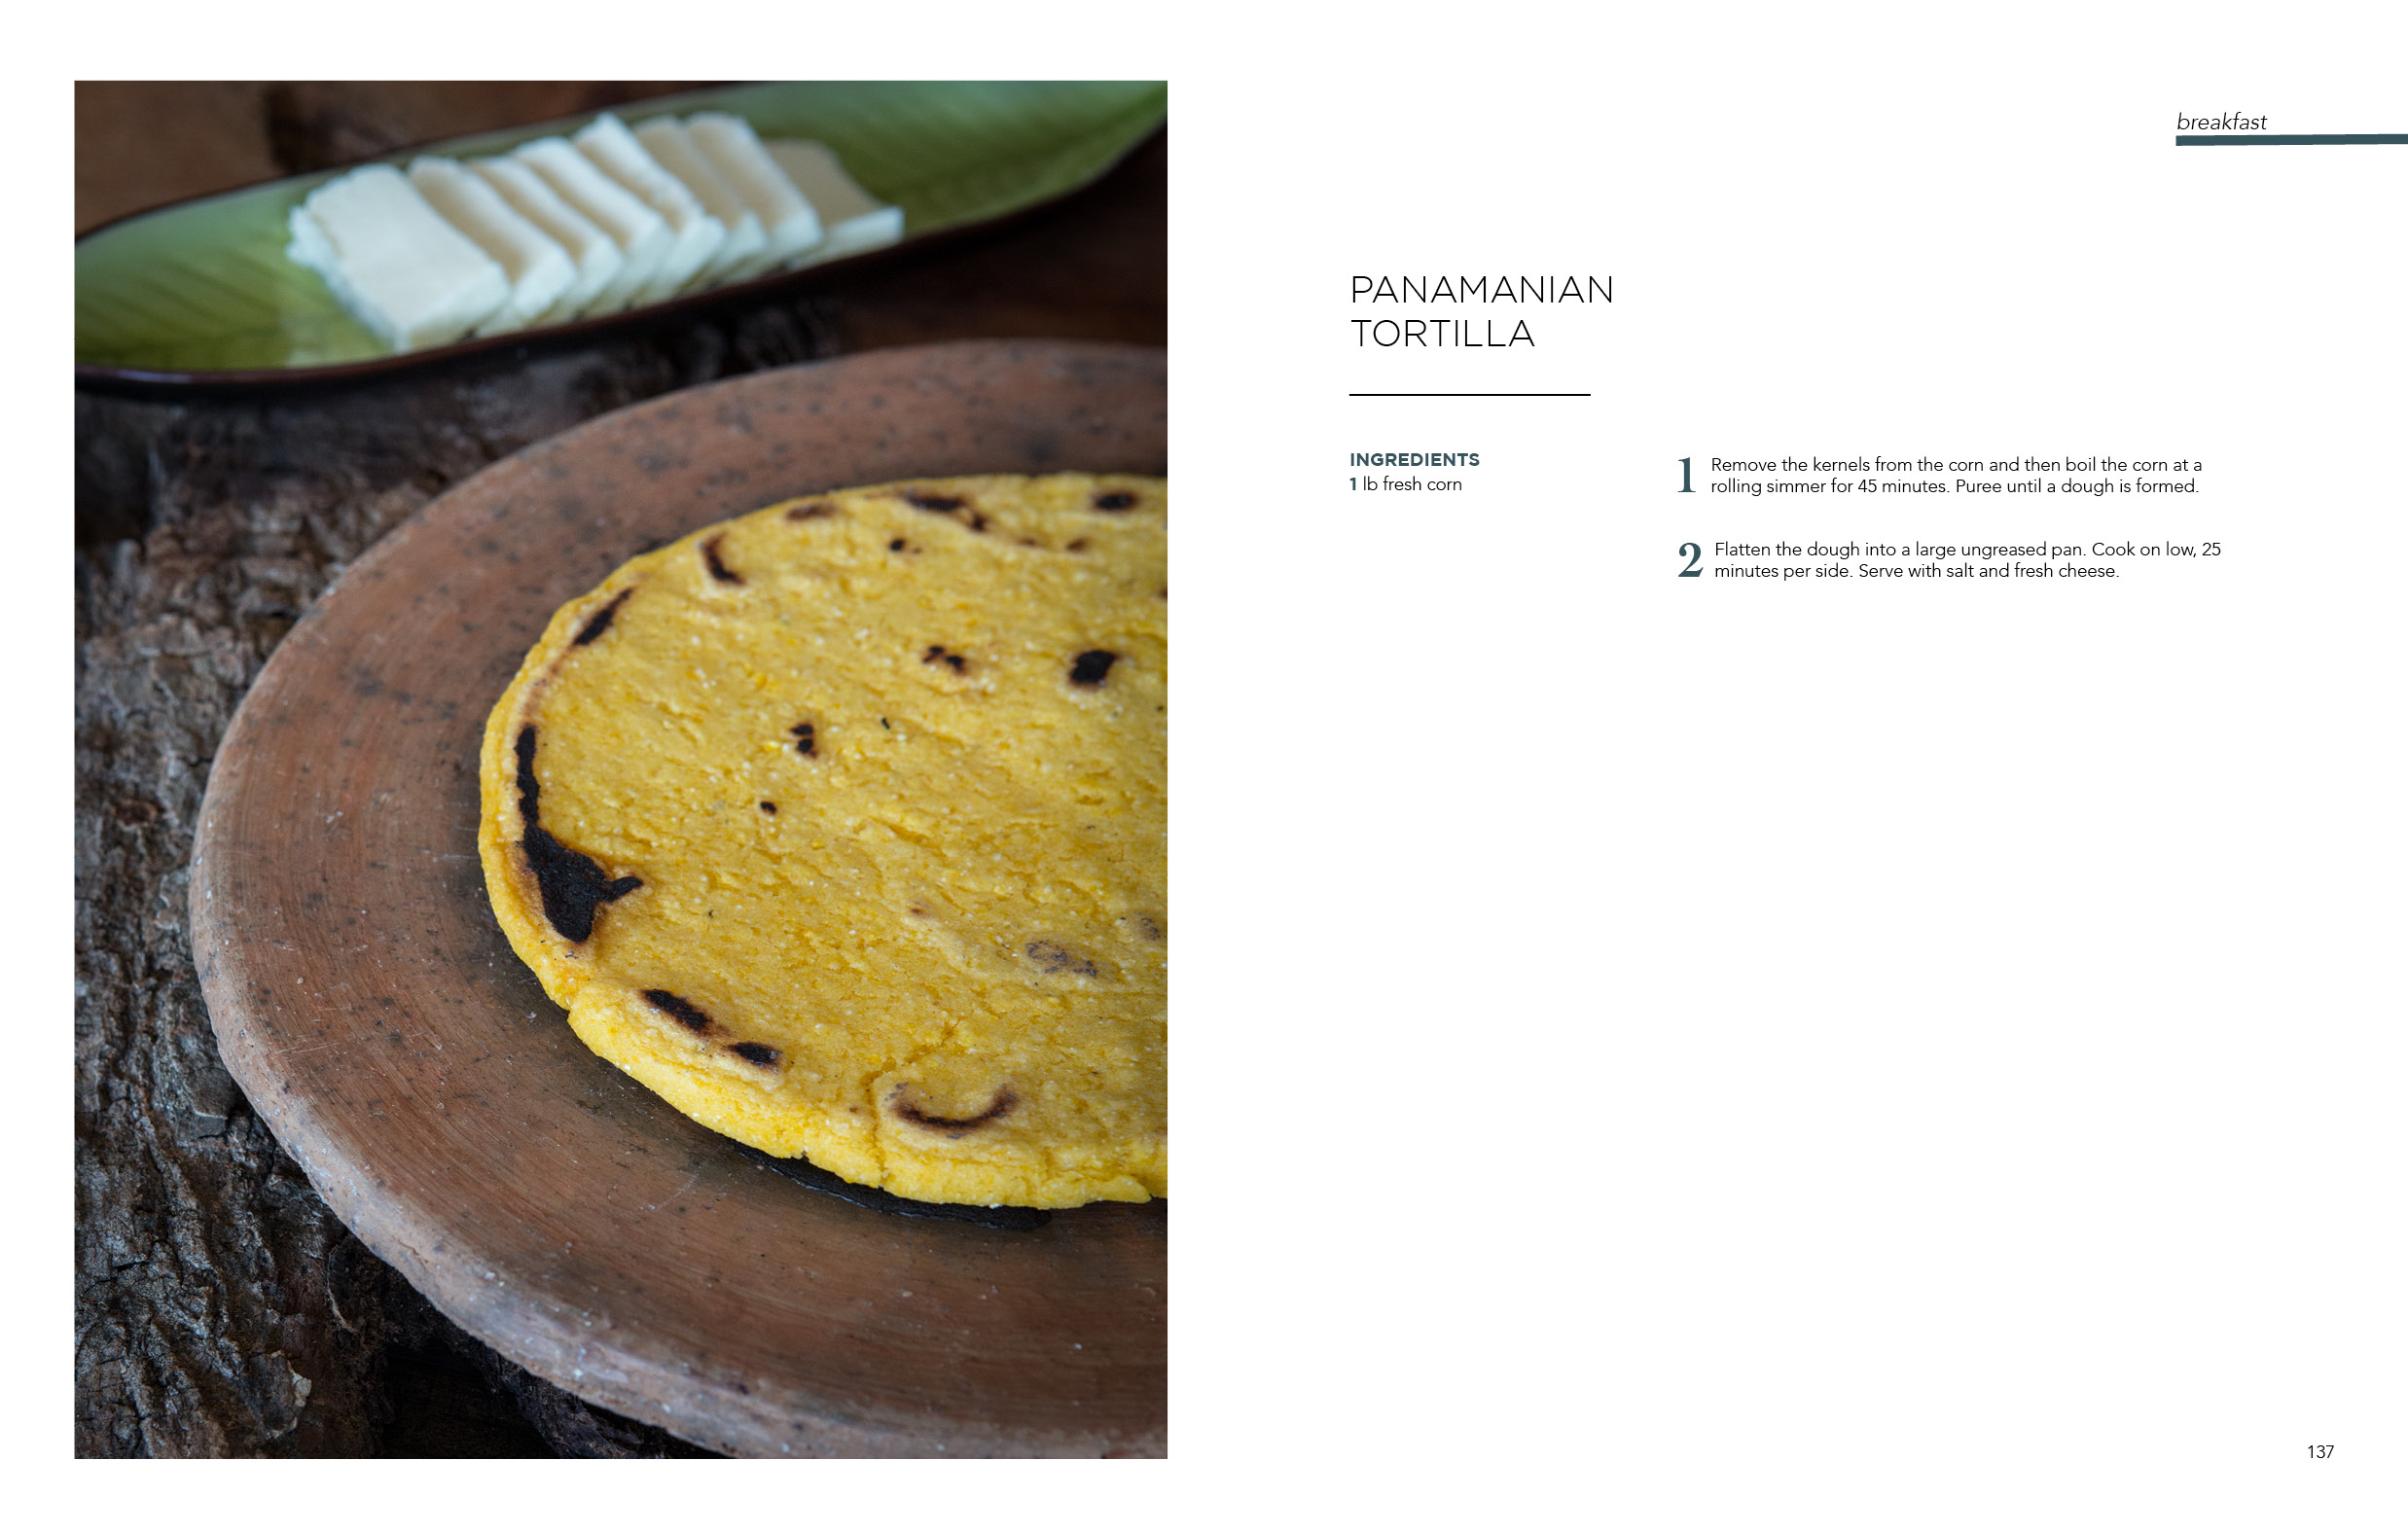 Cookbook Pages 10271869.jpg